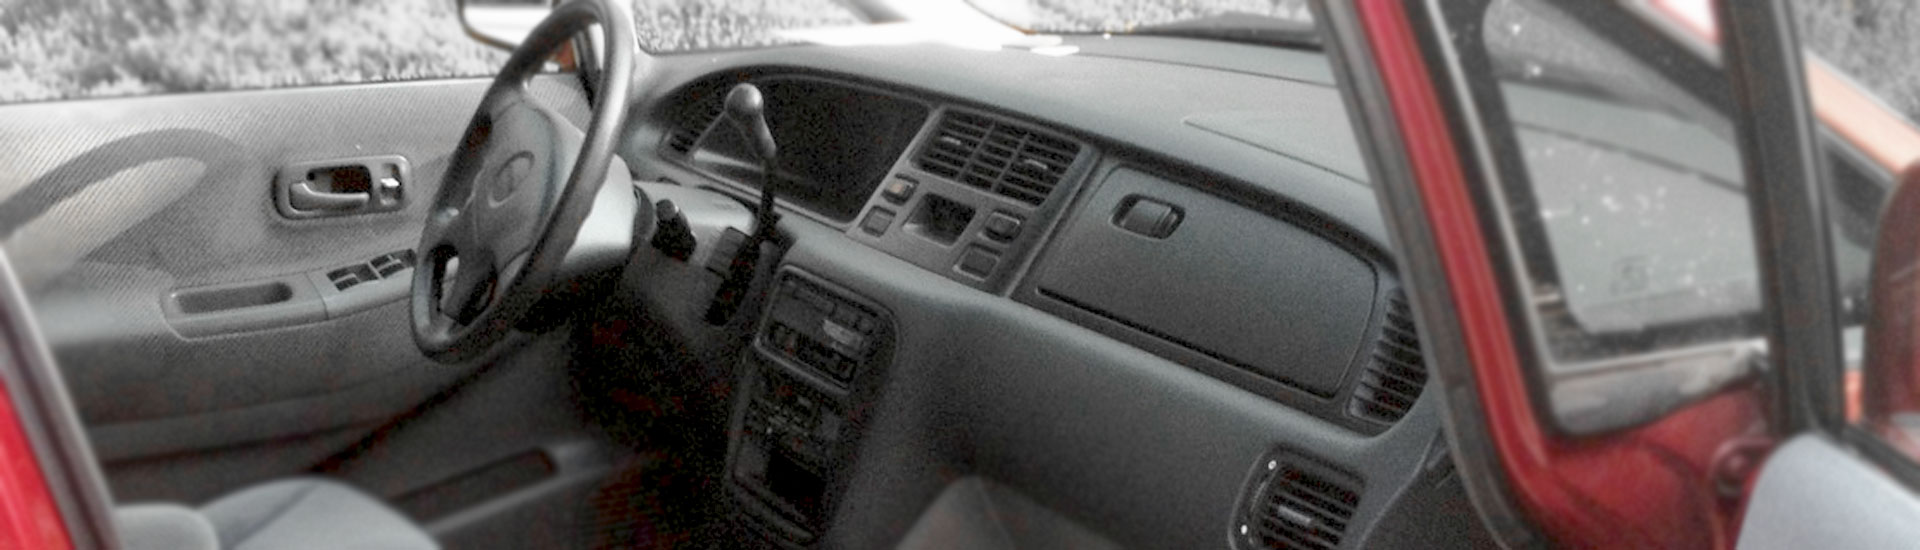 Isuzu Oasis Custom Dash Kits